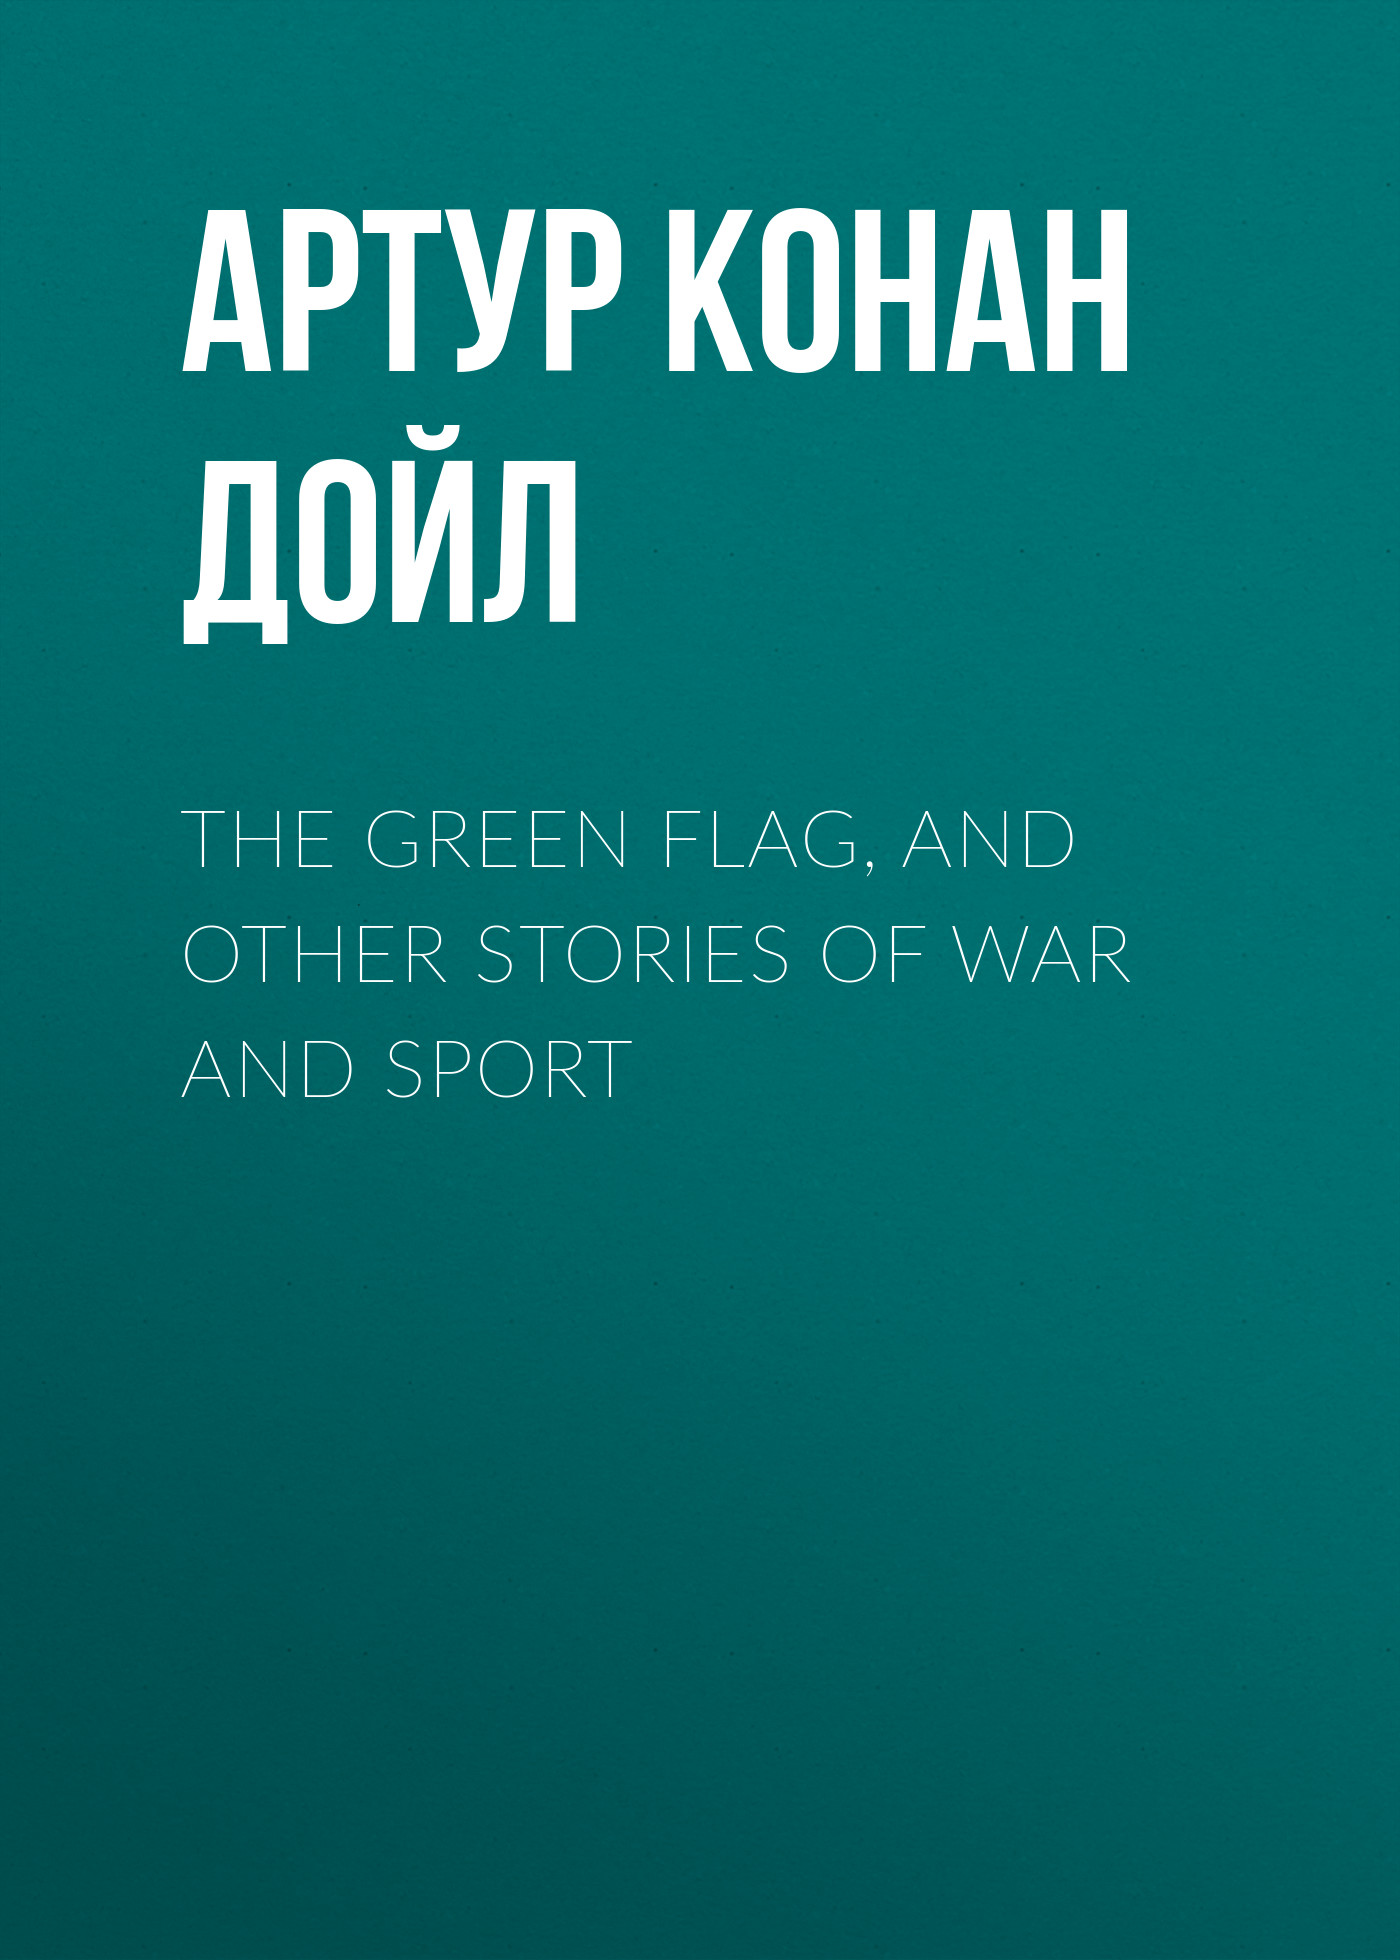 Артур Конан Дойл The Green Flag, and Other Stories of War and Sport артур конан дойл the memoirs of sherlock holmes and other stories воспоминания шерлока холмса и другие рассказы